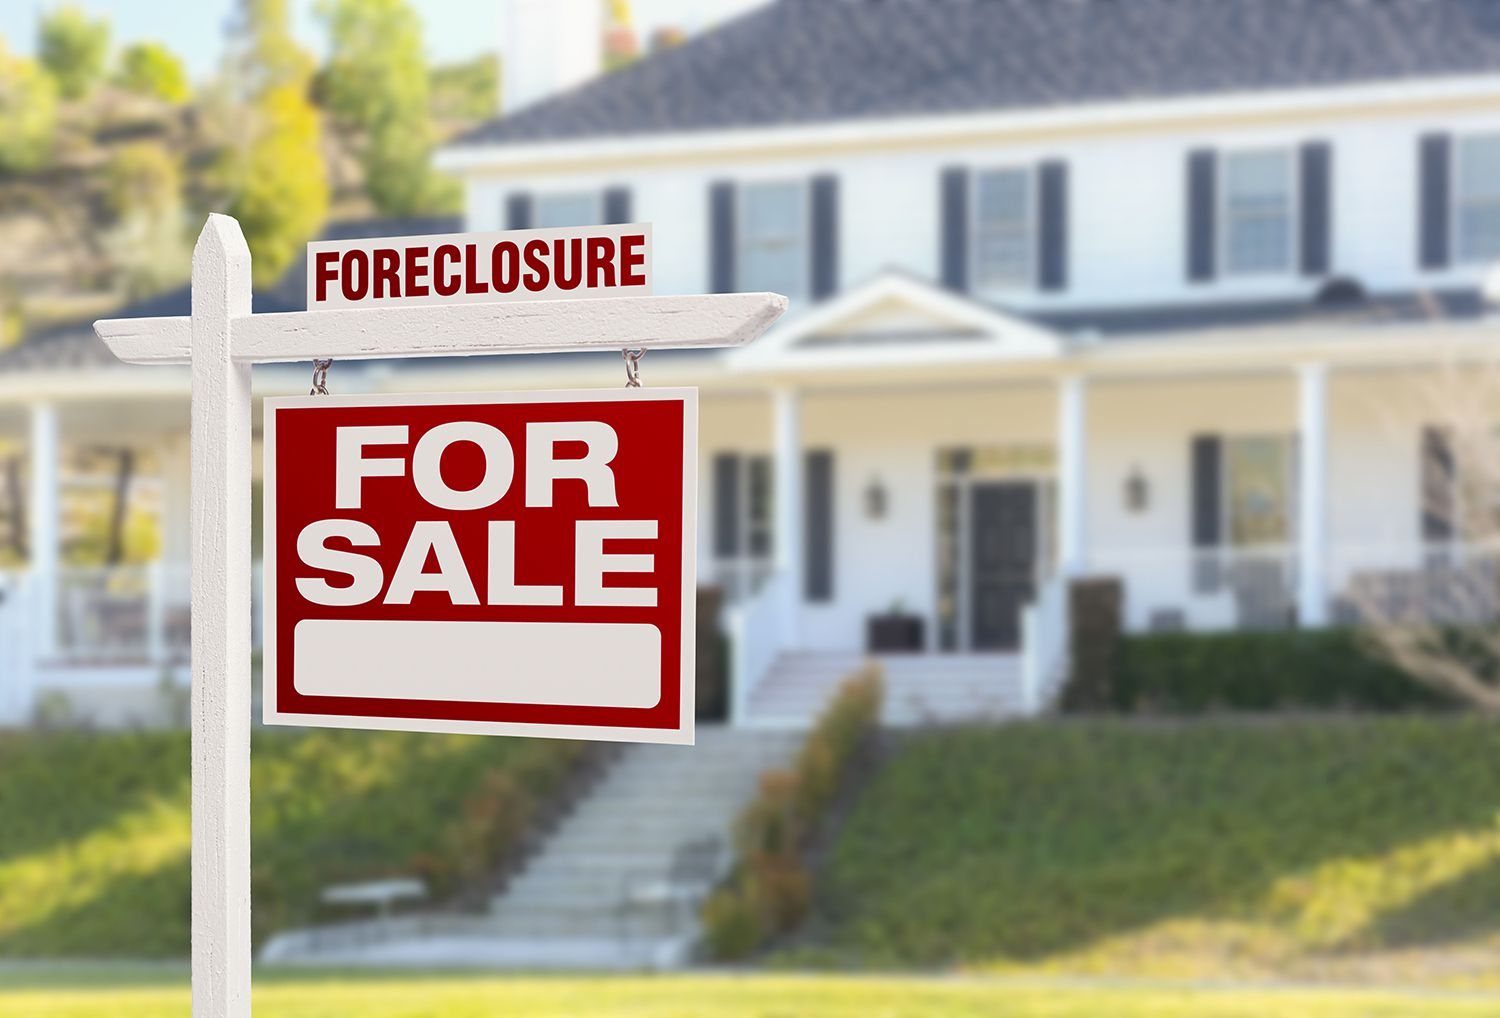 A Real Foreclosure Negotiation With the Bank